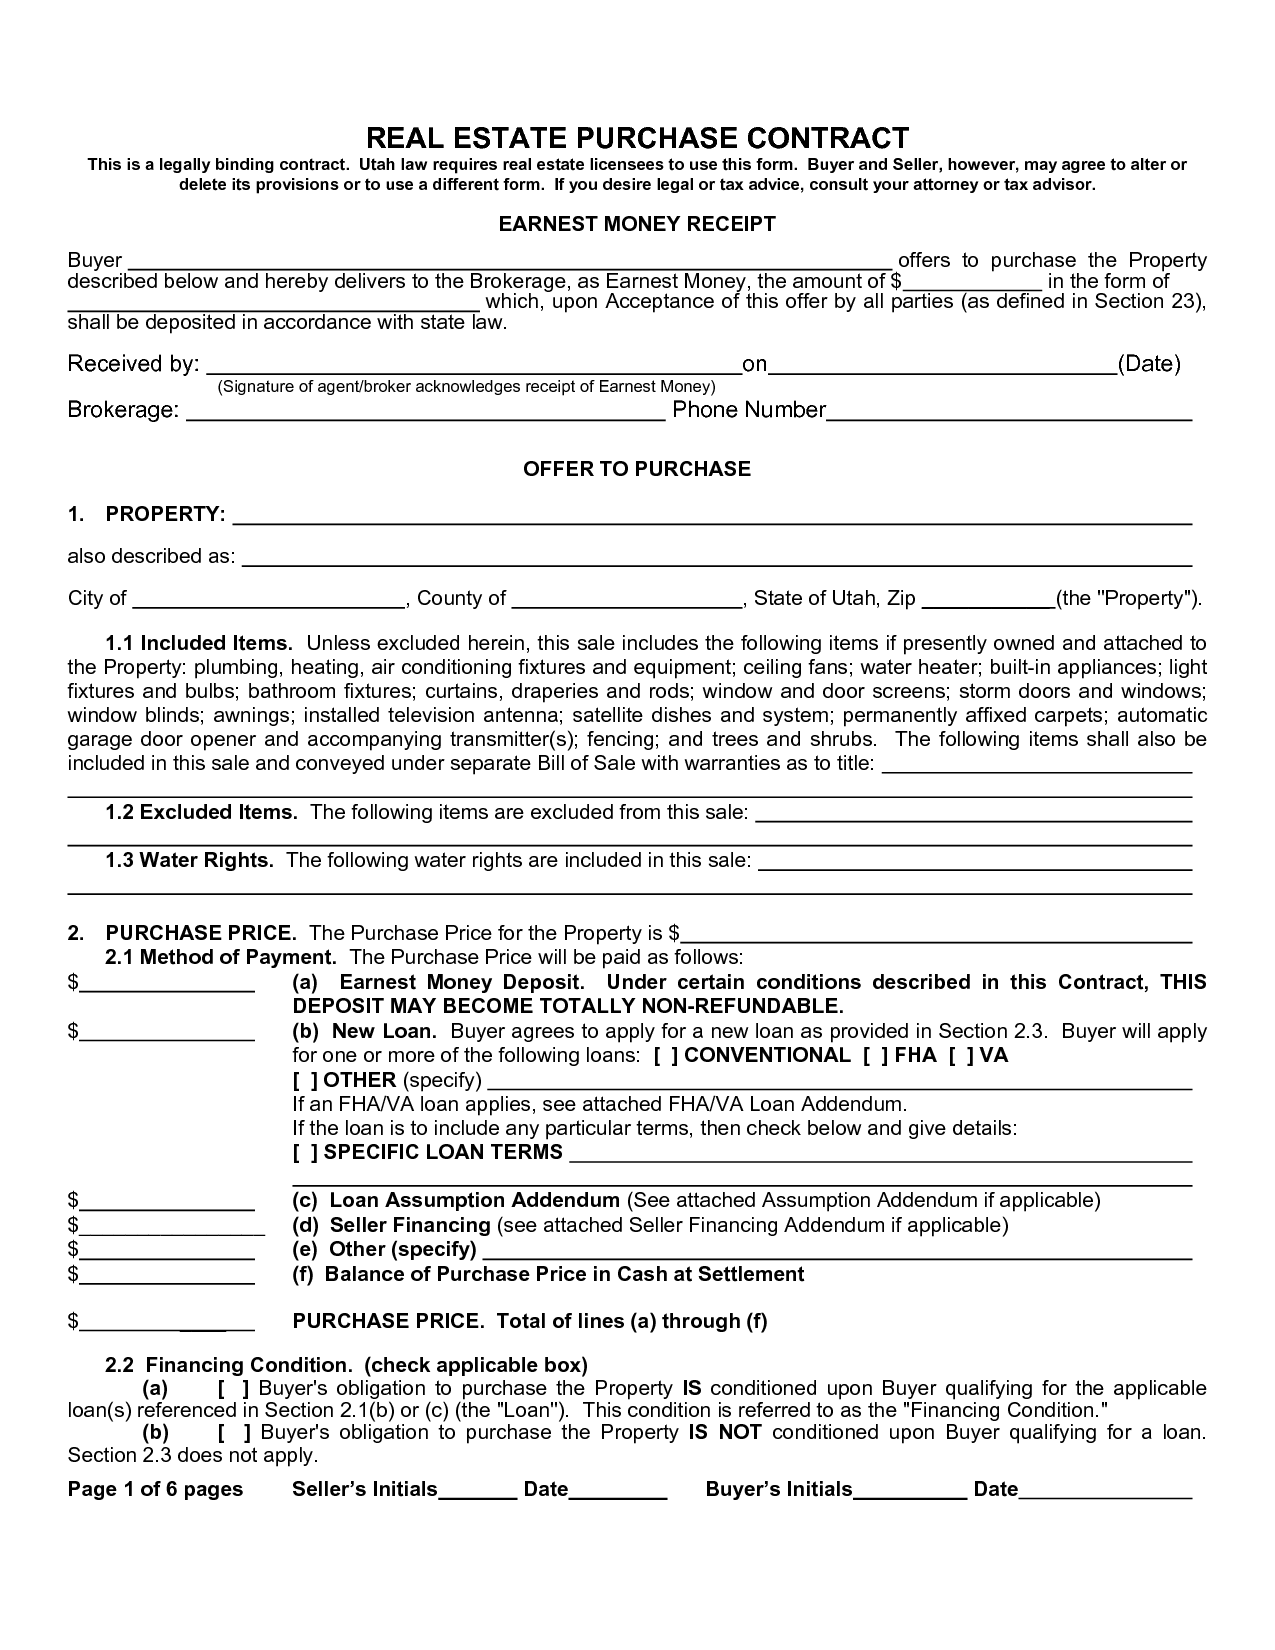 Free Purchase Agreement Form Free Printable Documents Purchase Contract Purchase Agreement Real Estate Contract